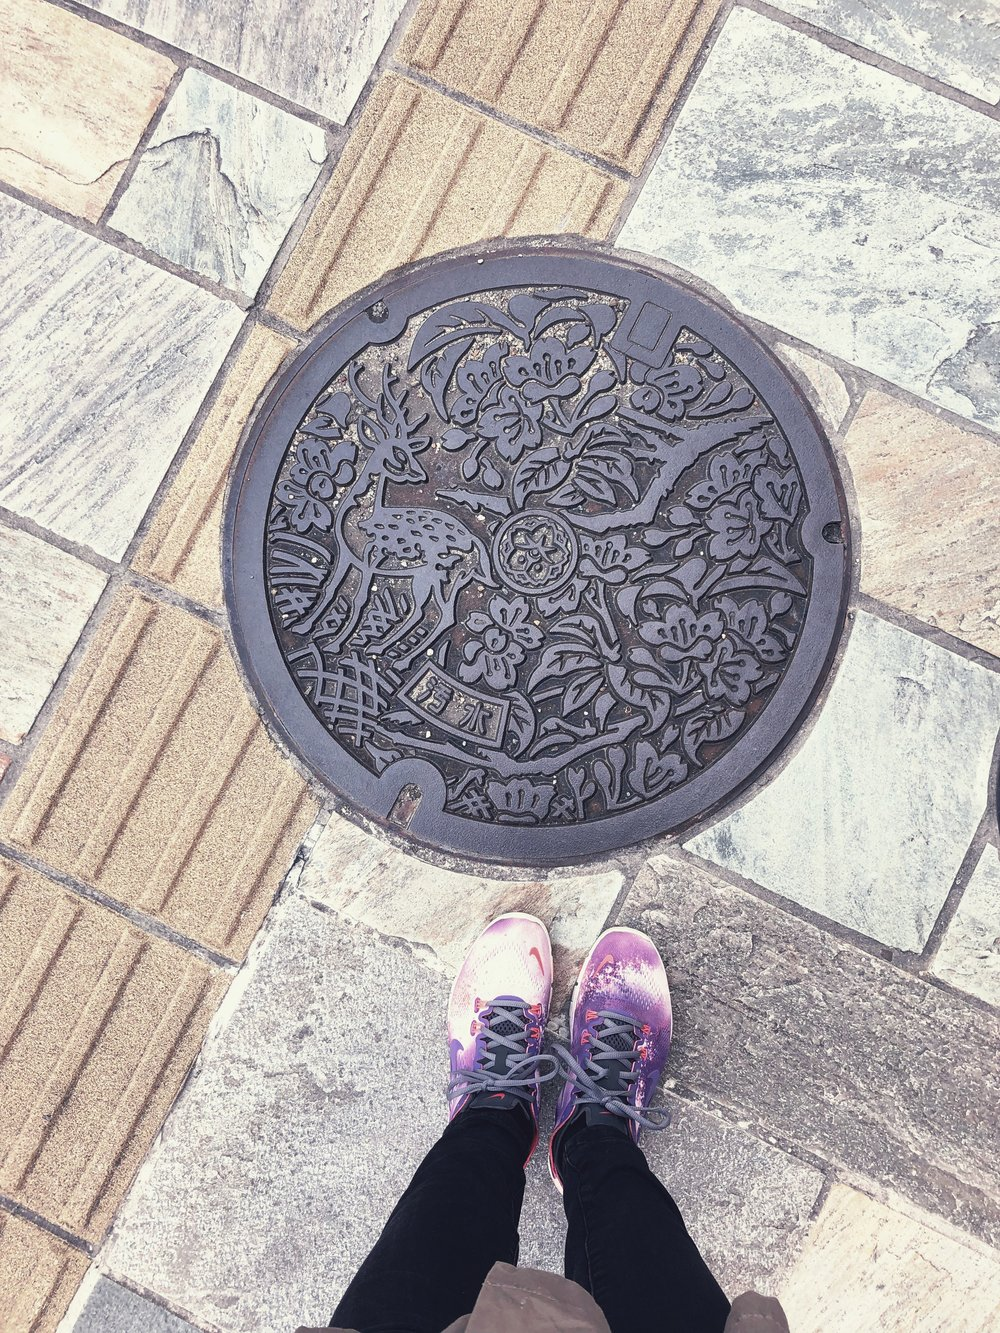 Taking pictures ot manholes in every japanese city has become a hobby, and the one in Nara had deer and cherry blossoms on it